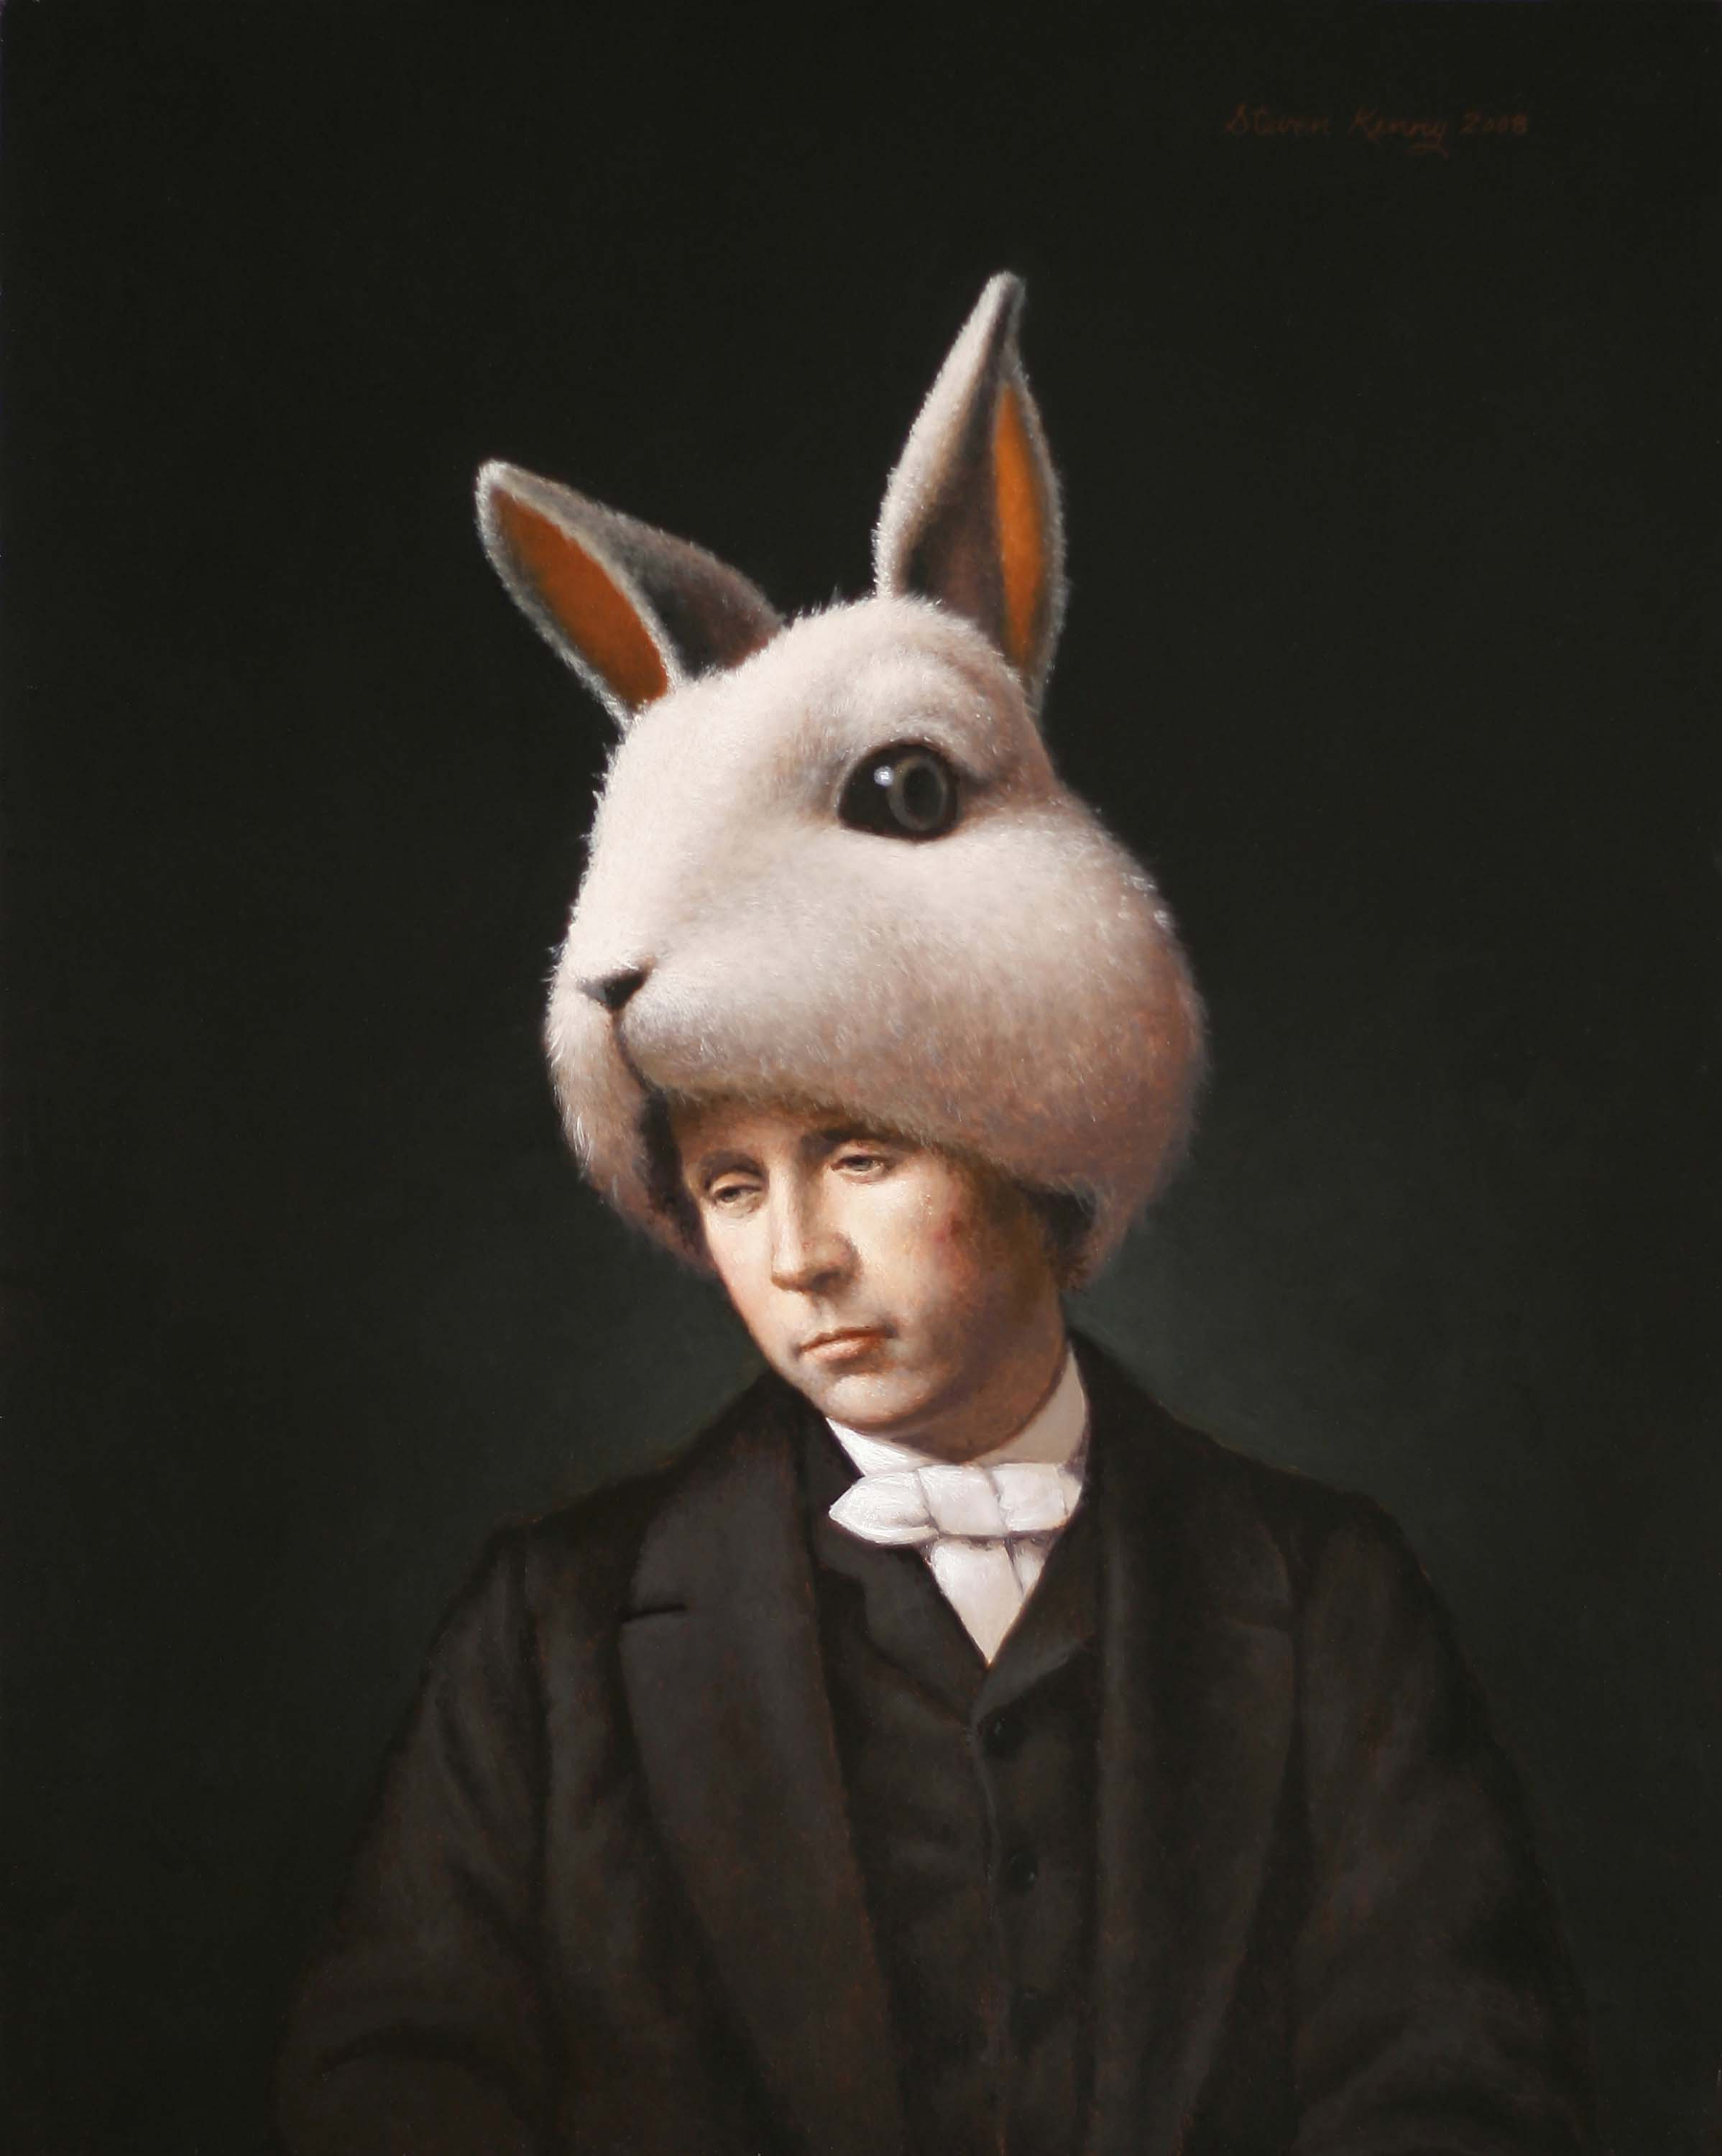 Lewis_Carroll_as_the_White_Rabbit